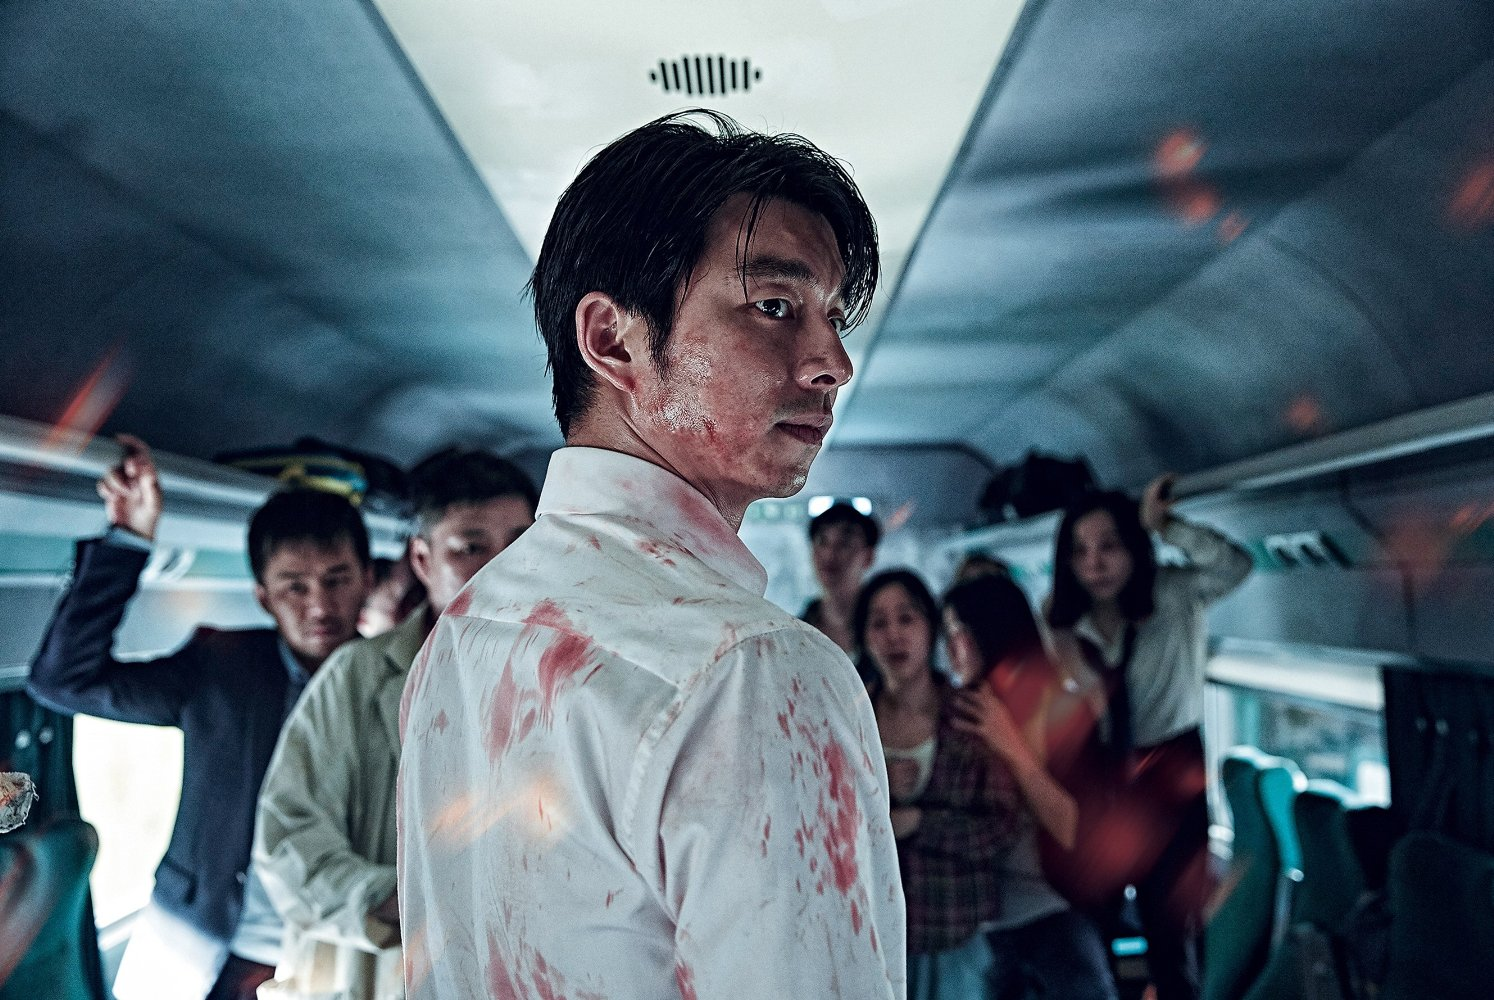 El hit de terror zombi, Train to Busan, desarrolla secuela titulada Peninsula